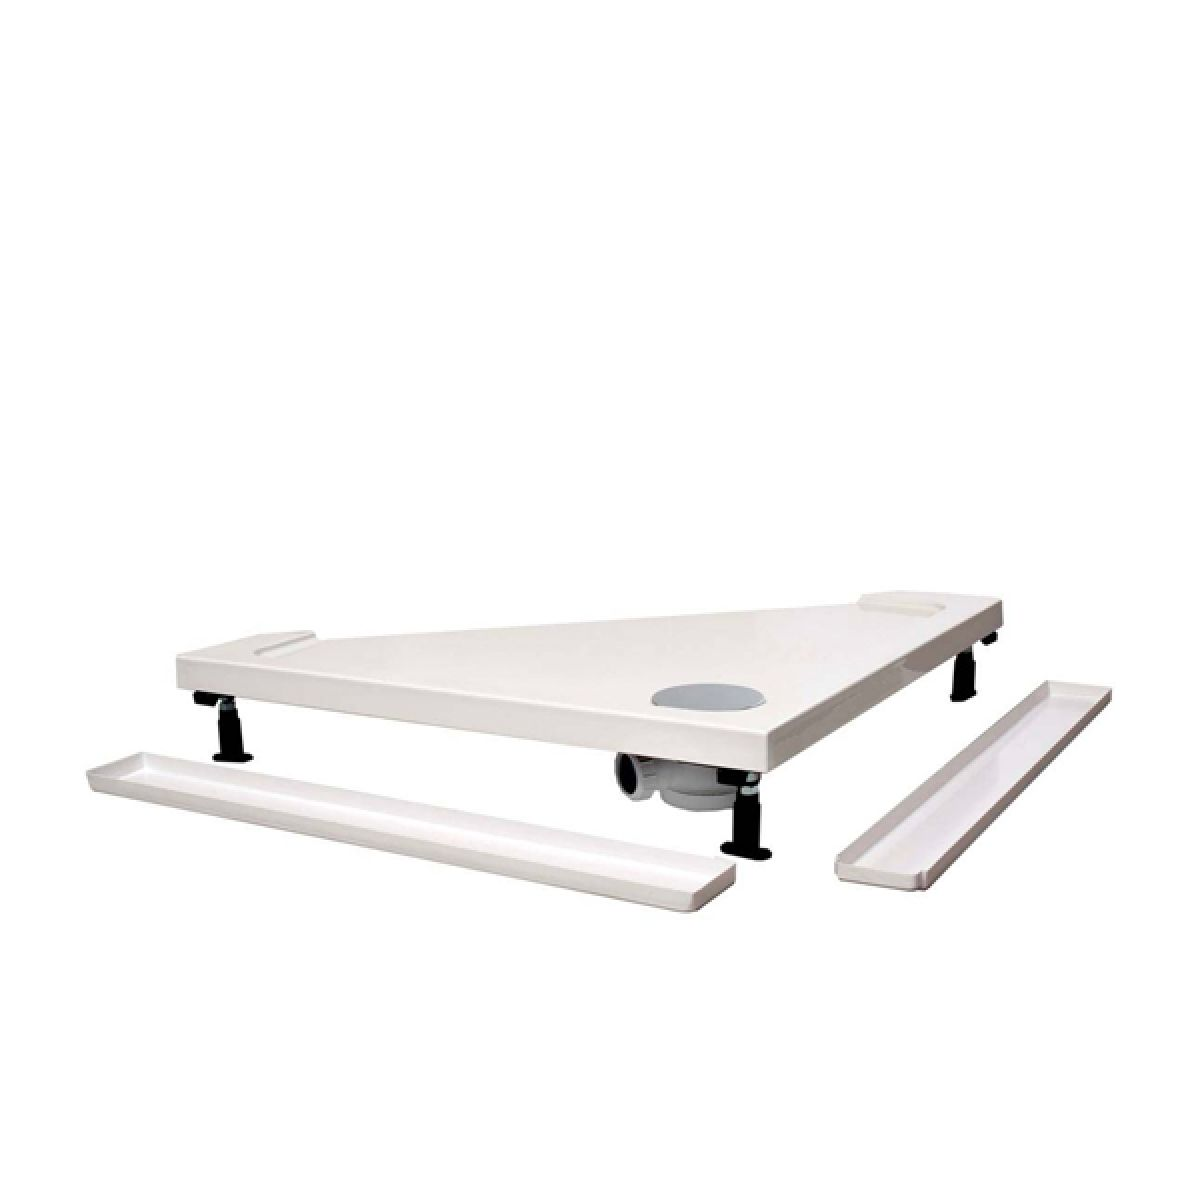 Frontline 1200mm Leg And Panel Pack